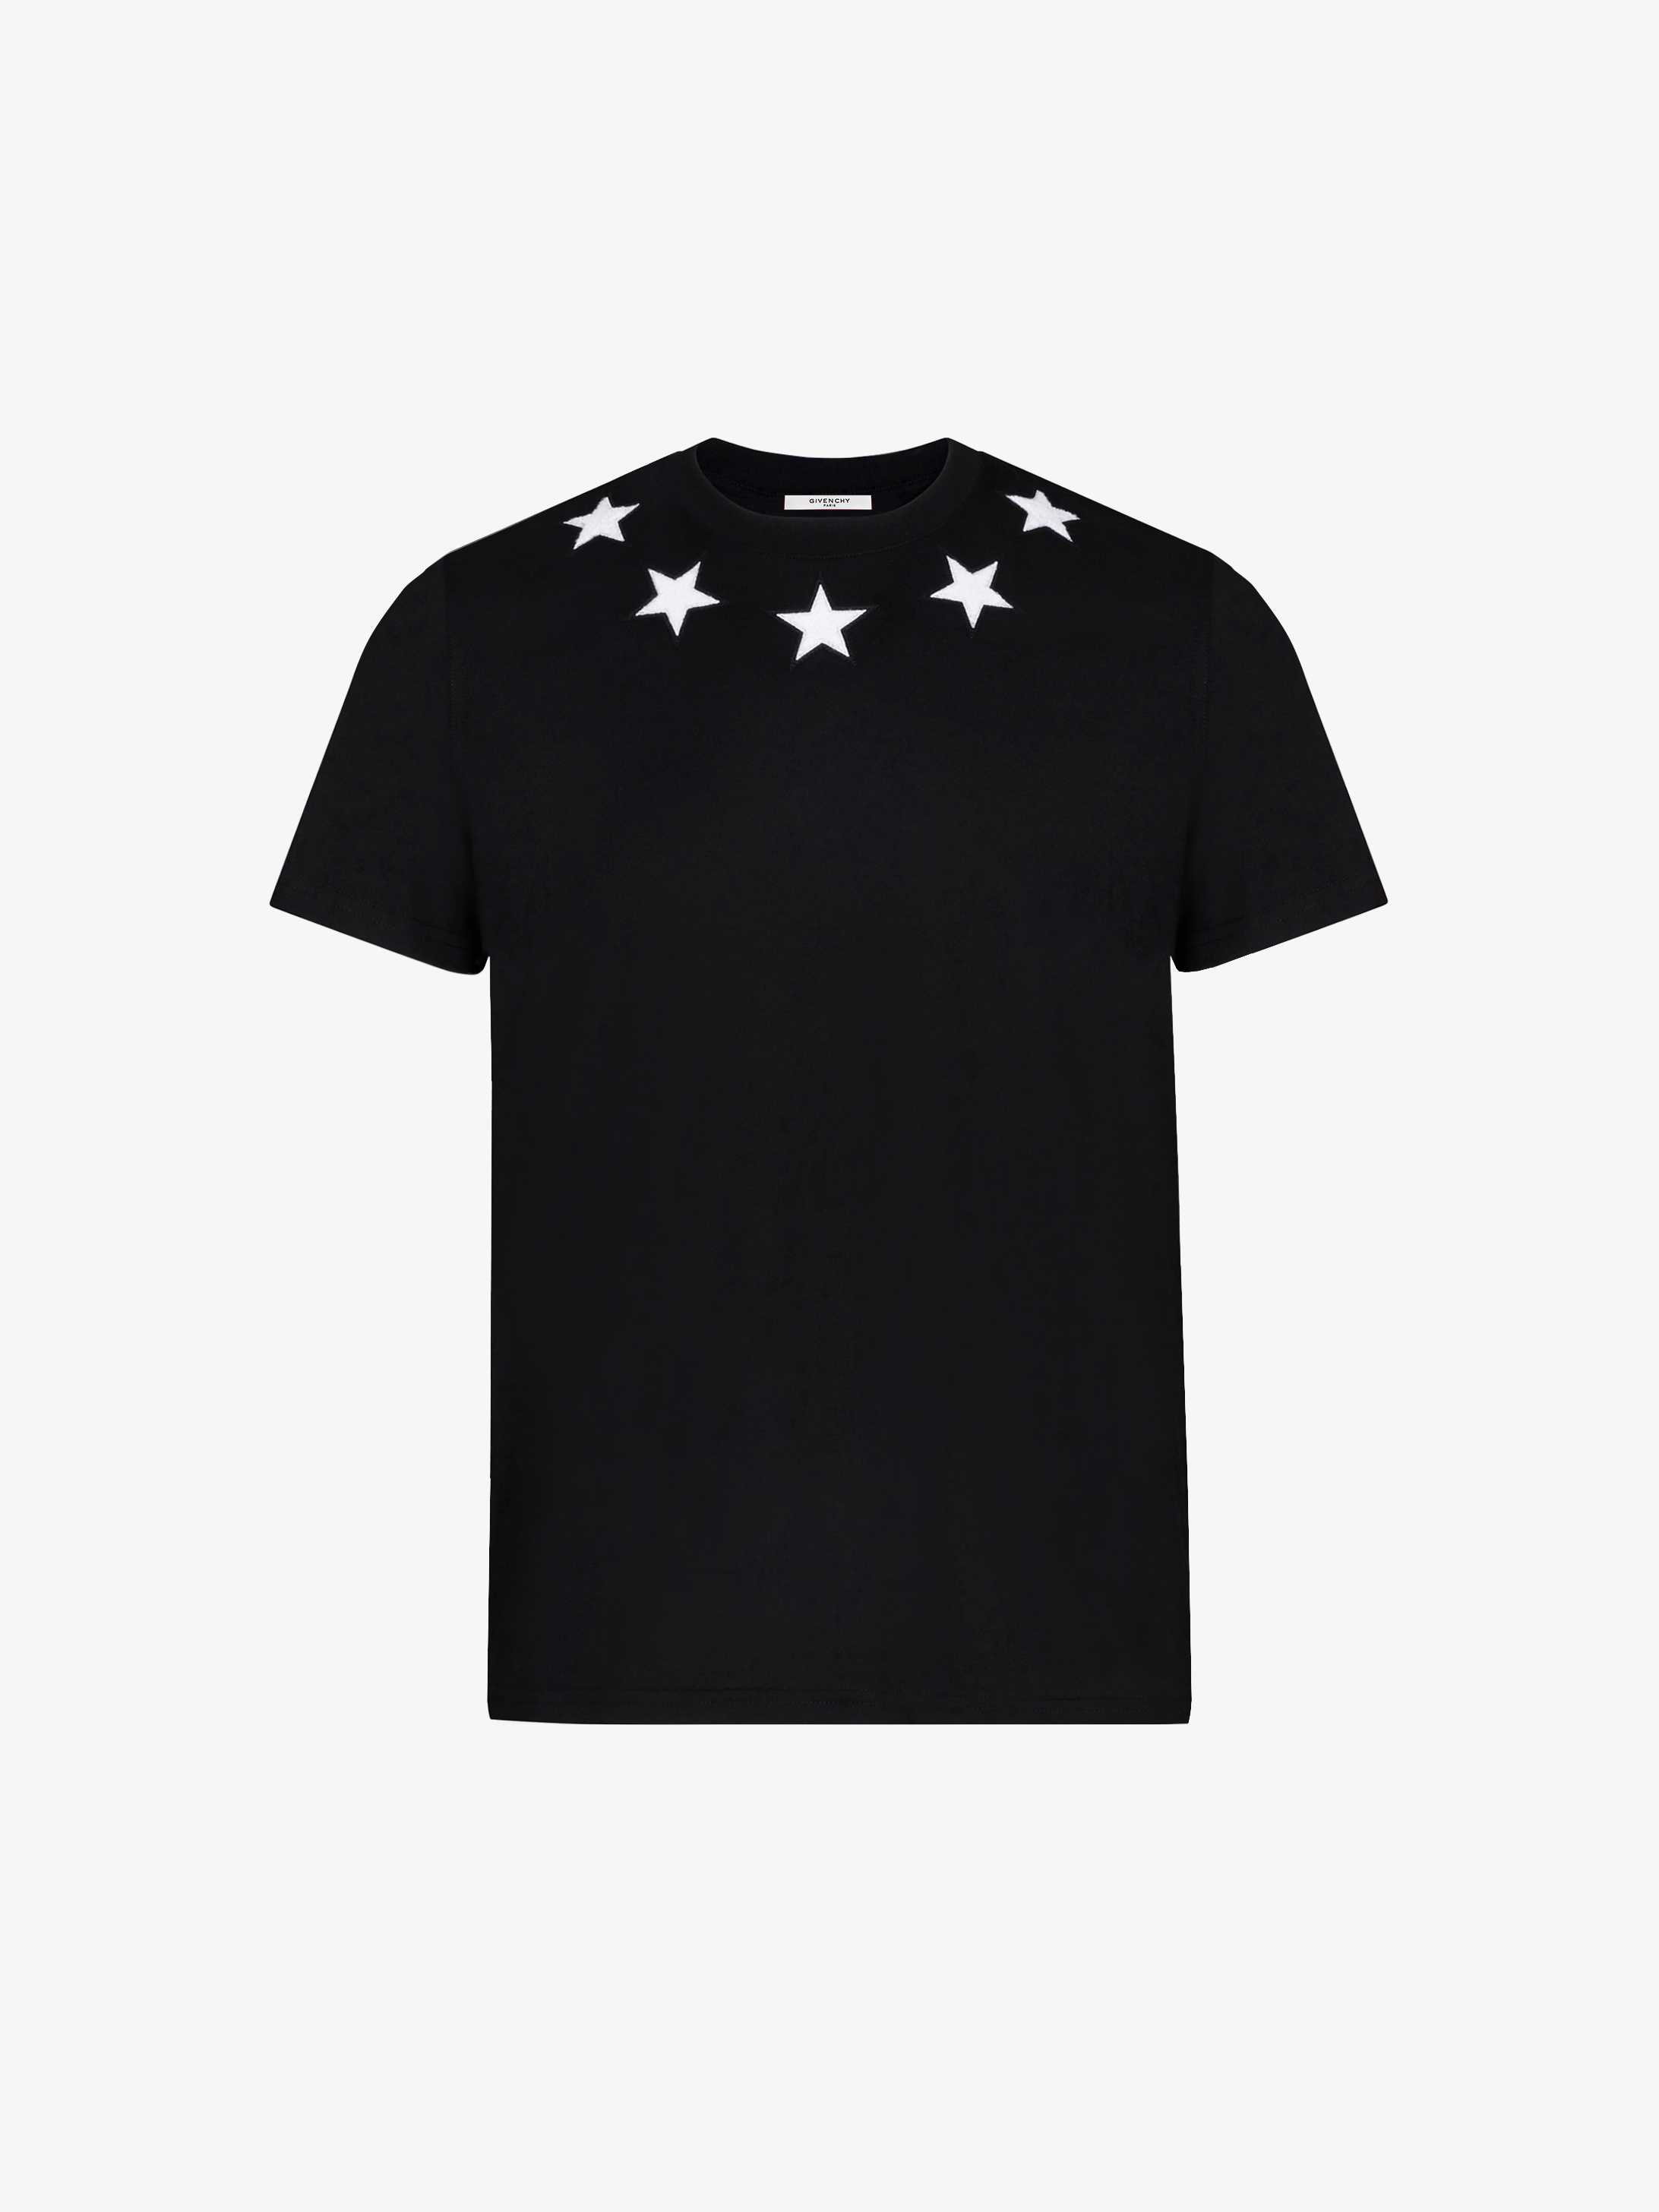 givenchy stars t shirt givenchy paris. Black Bedroom Furniture Sets. Home Design Ideas